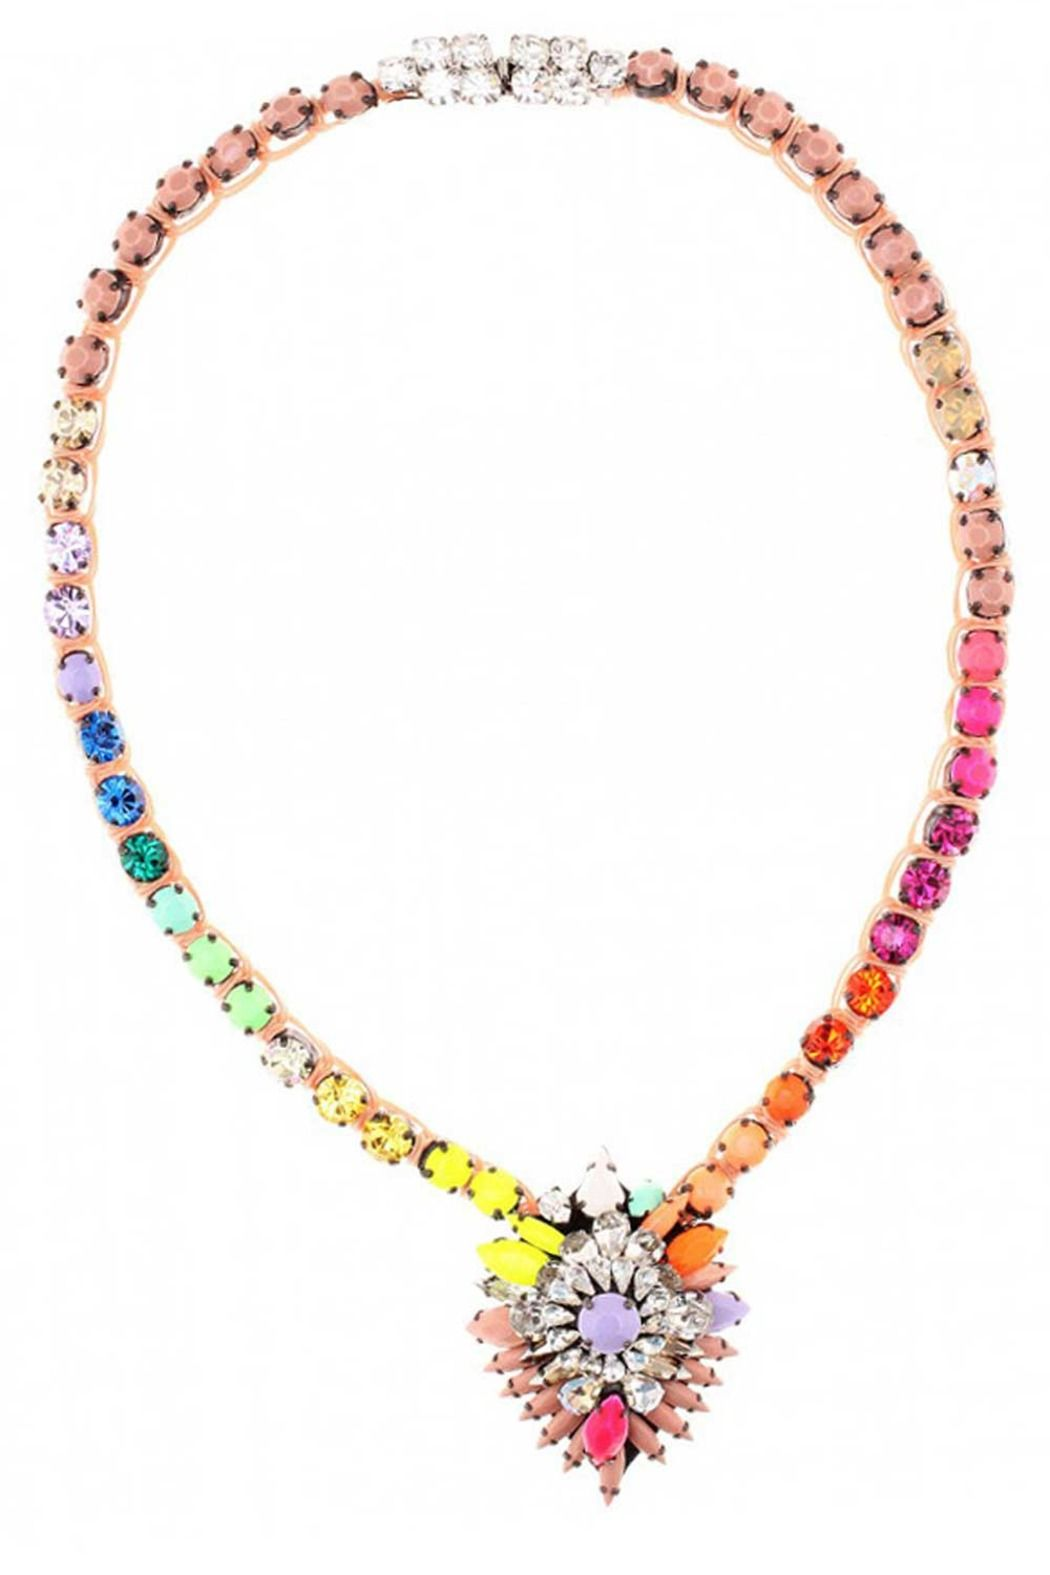 fashion necklace s london at evening best standard necklaces londons shourouk statement match